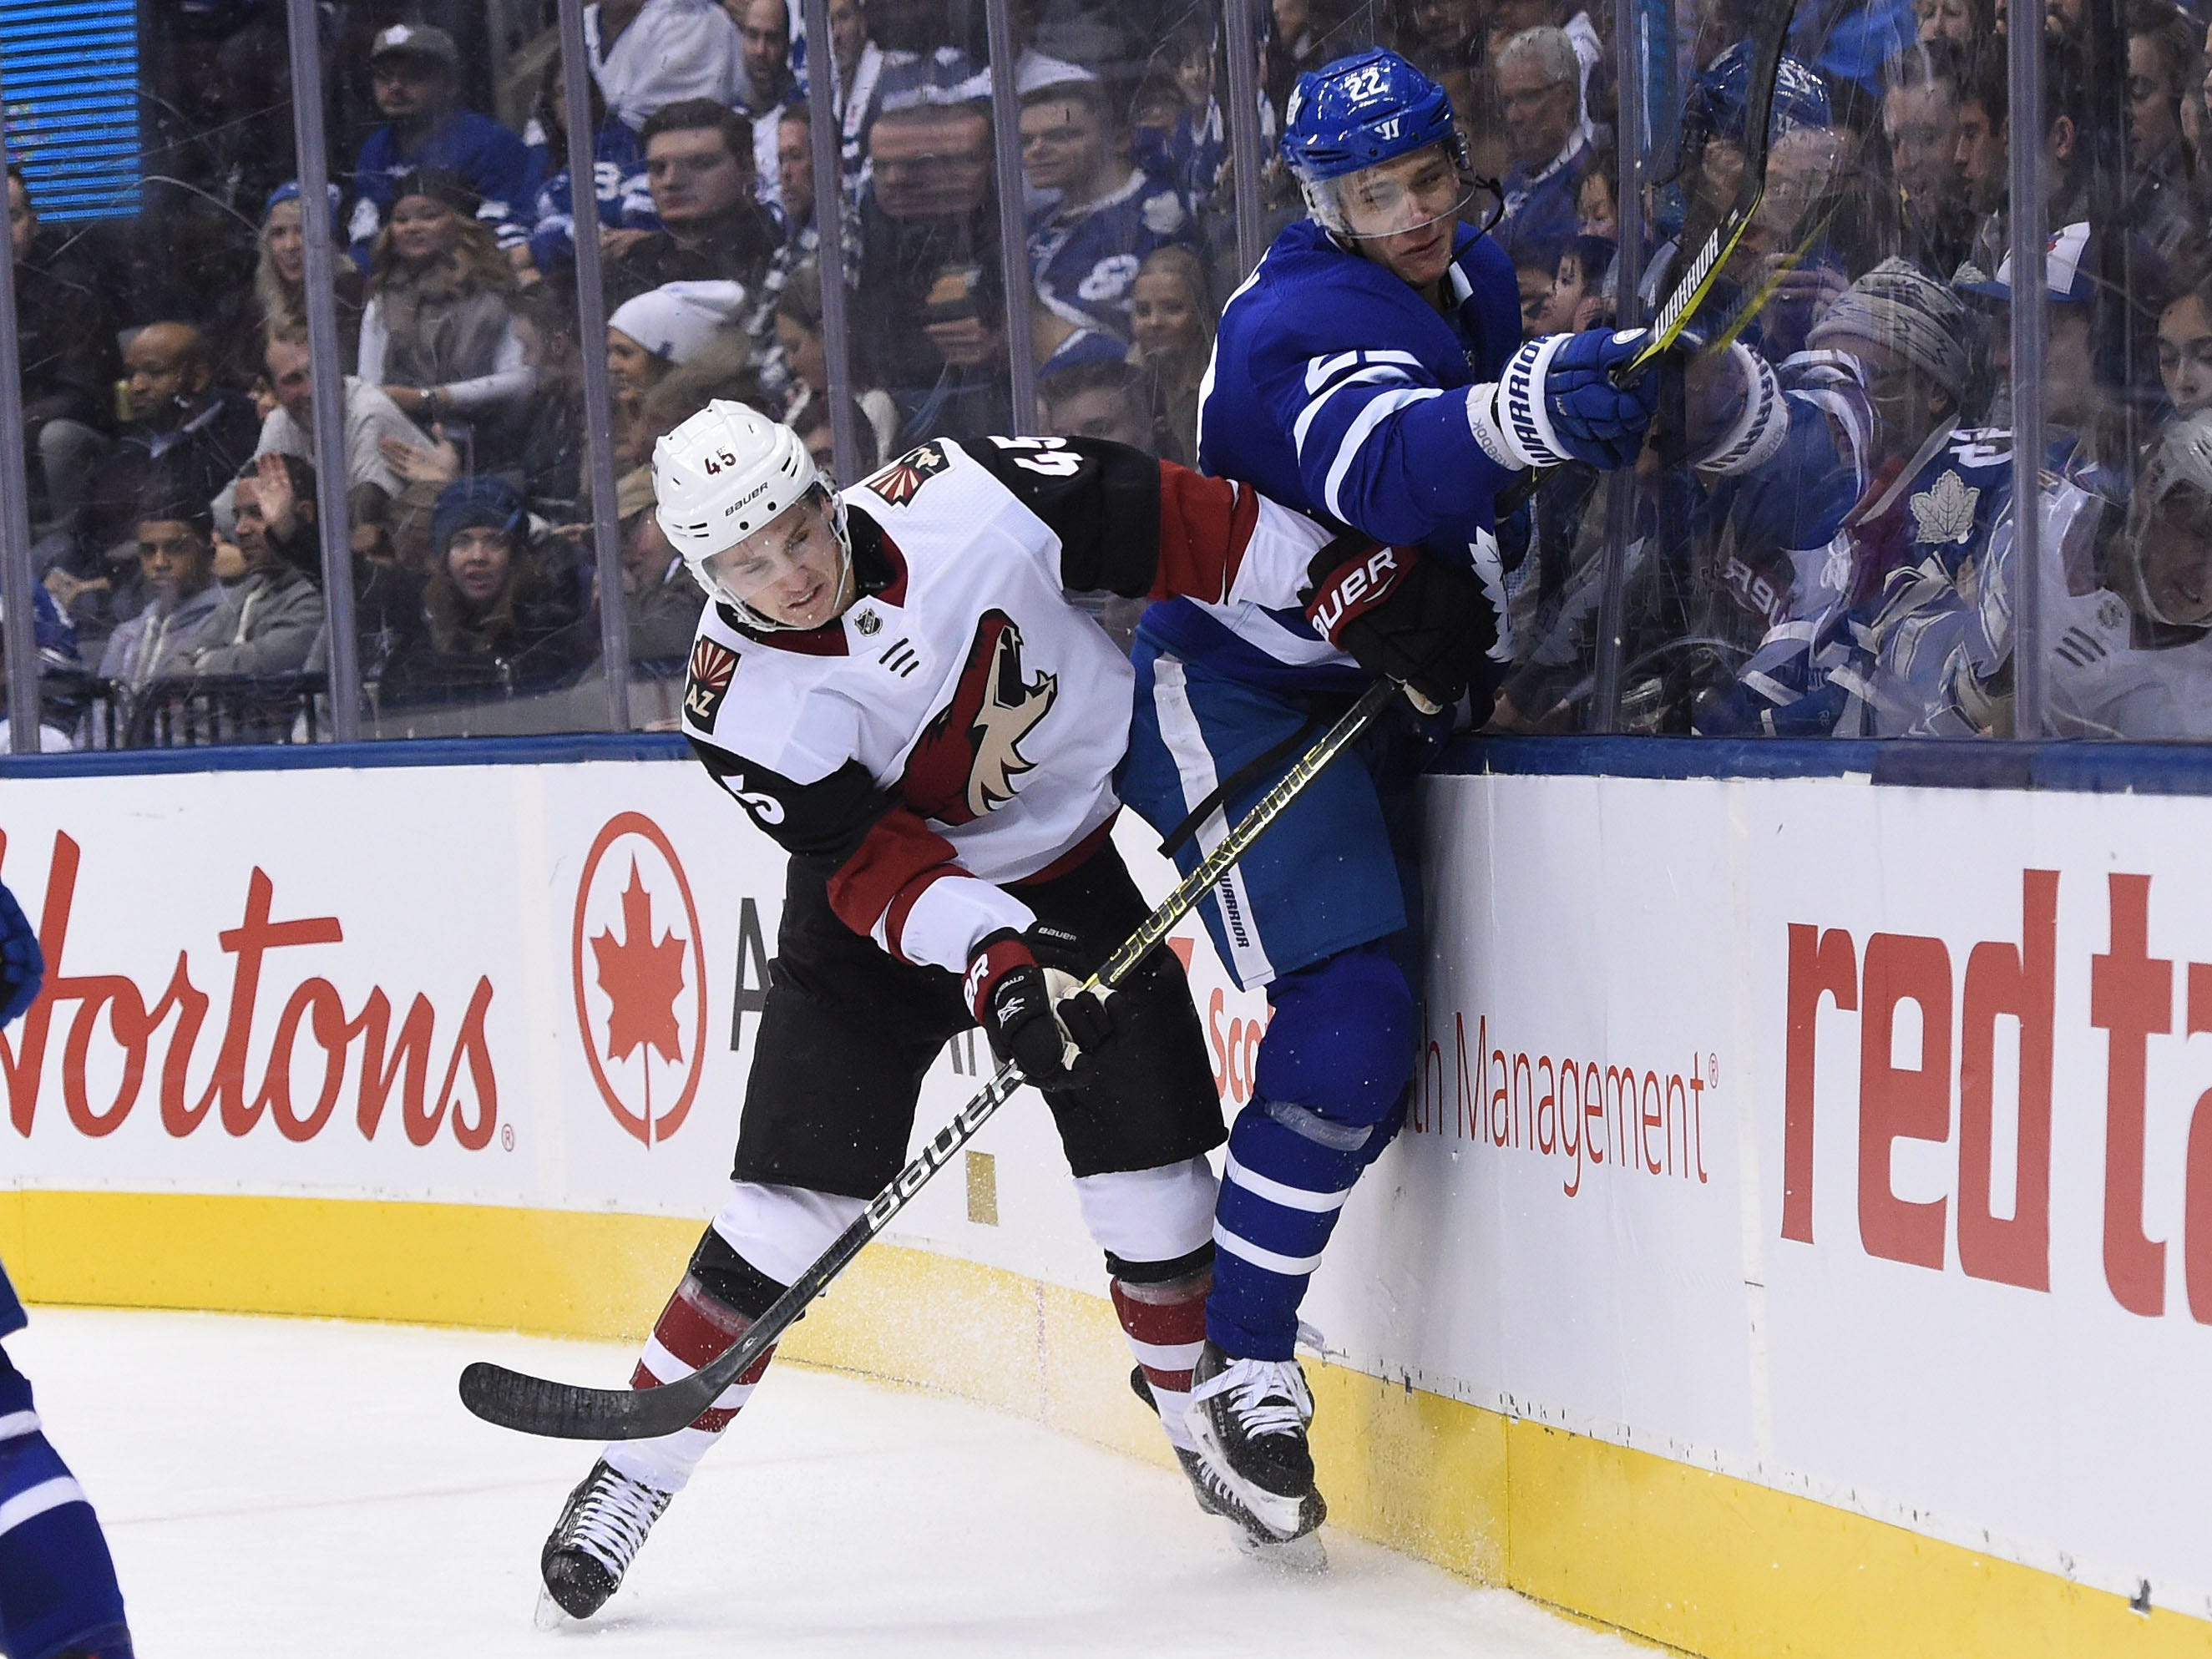 Jan 20, 2019: Arizona Coyotes forward Josh Arichibald (45) bodychecks Toronto Maple Leafs defenceman Nikita Zaitsev (22) in the first period at Scotiabank Arena.